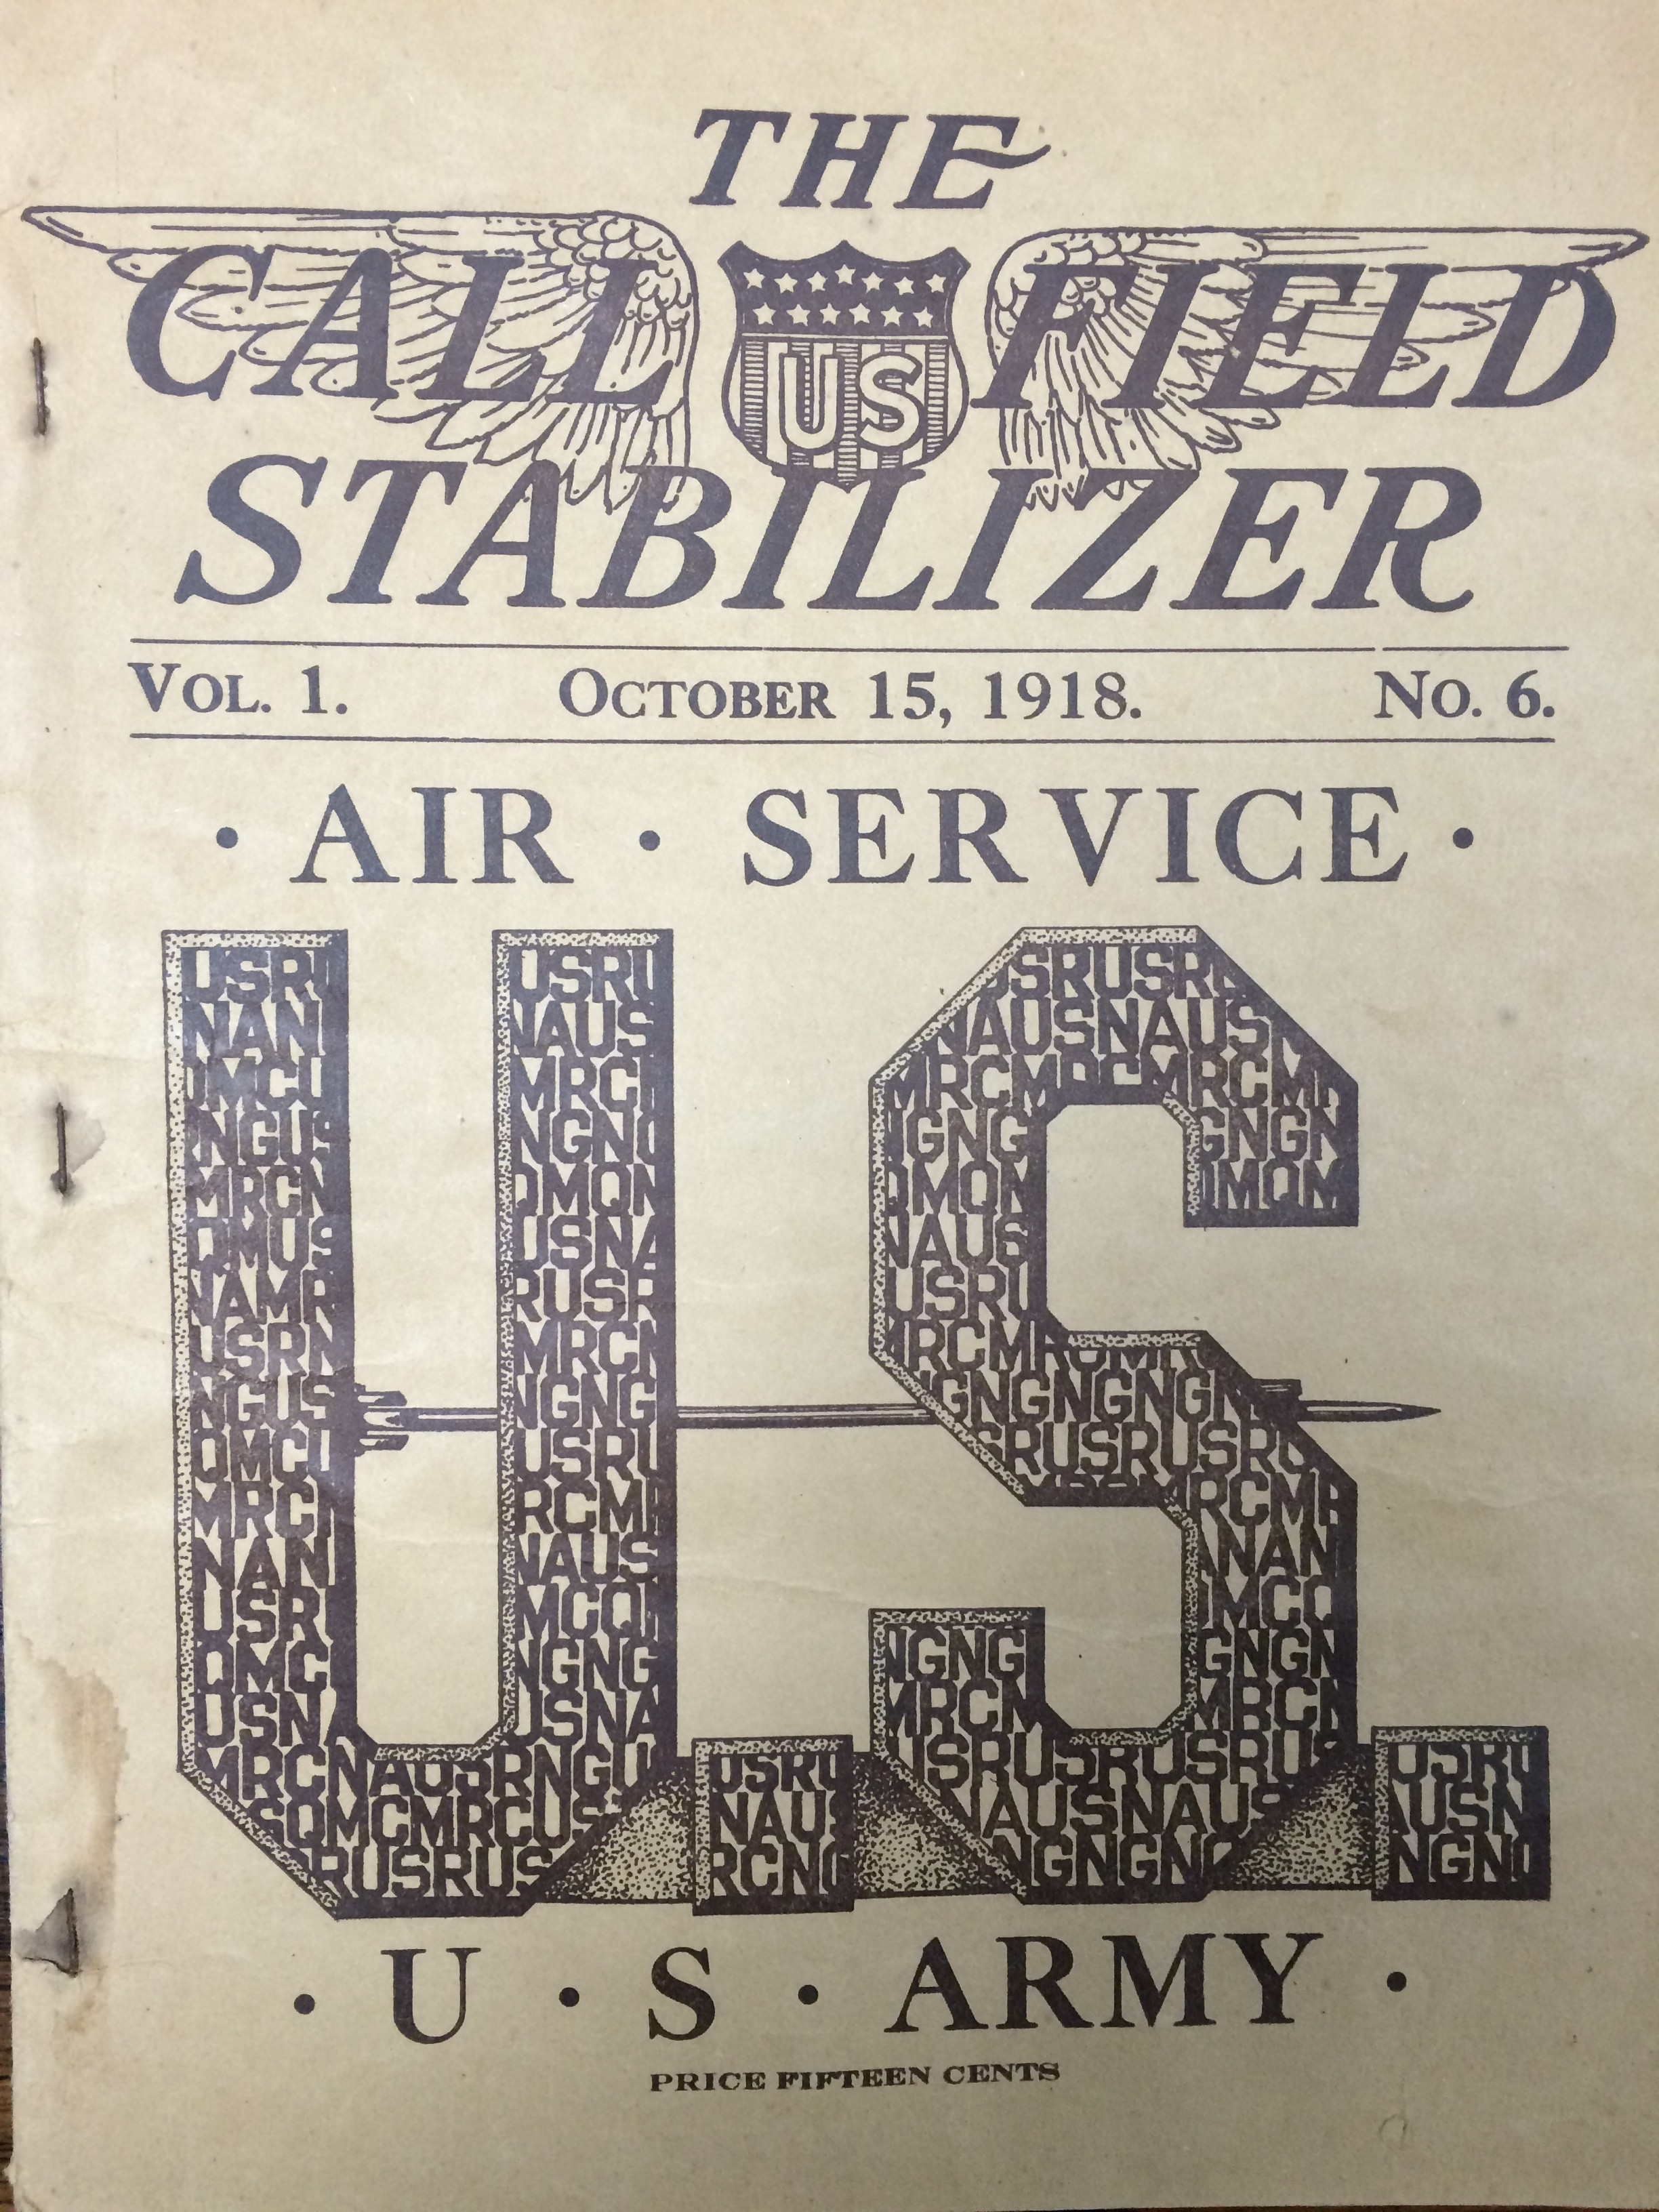 Image 1 October 15. 1918 Call Field Stabilizer